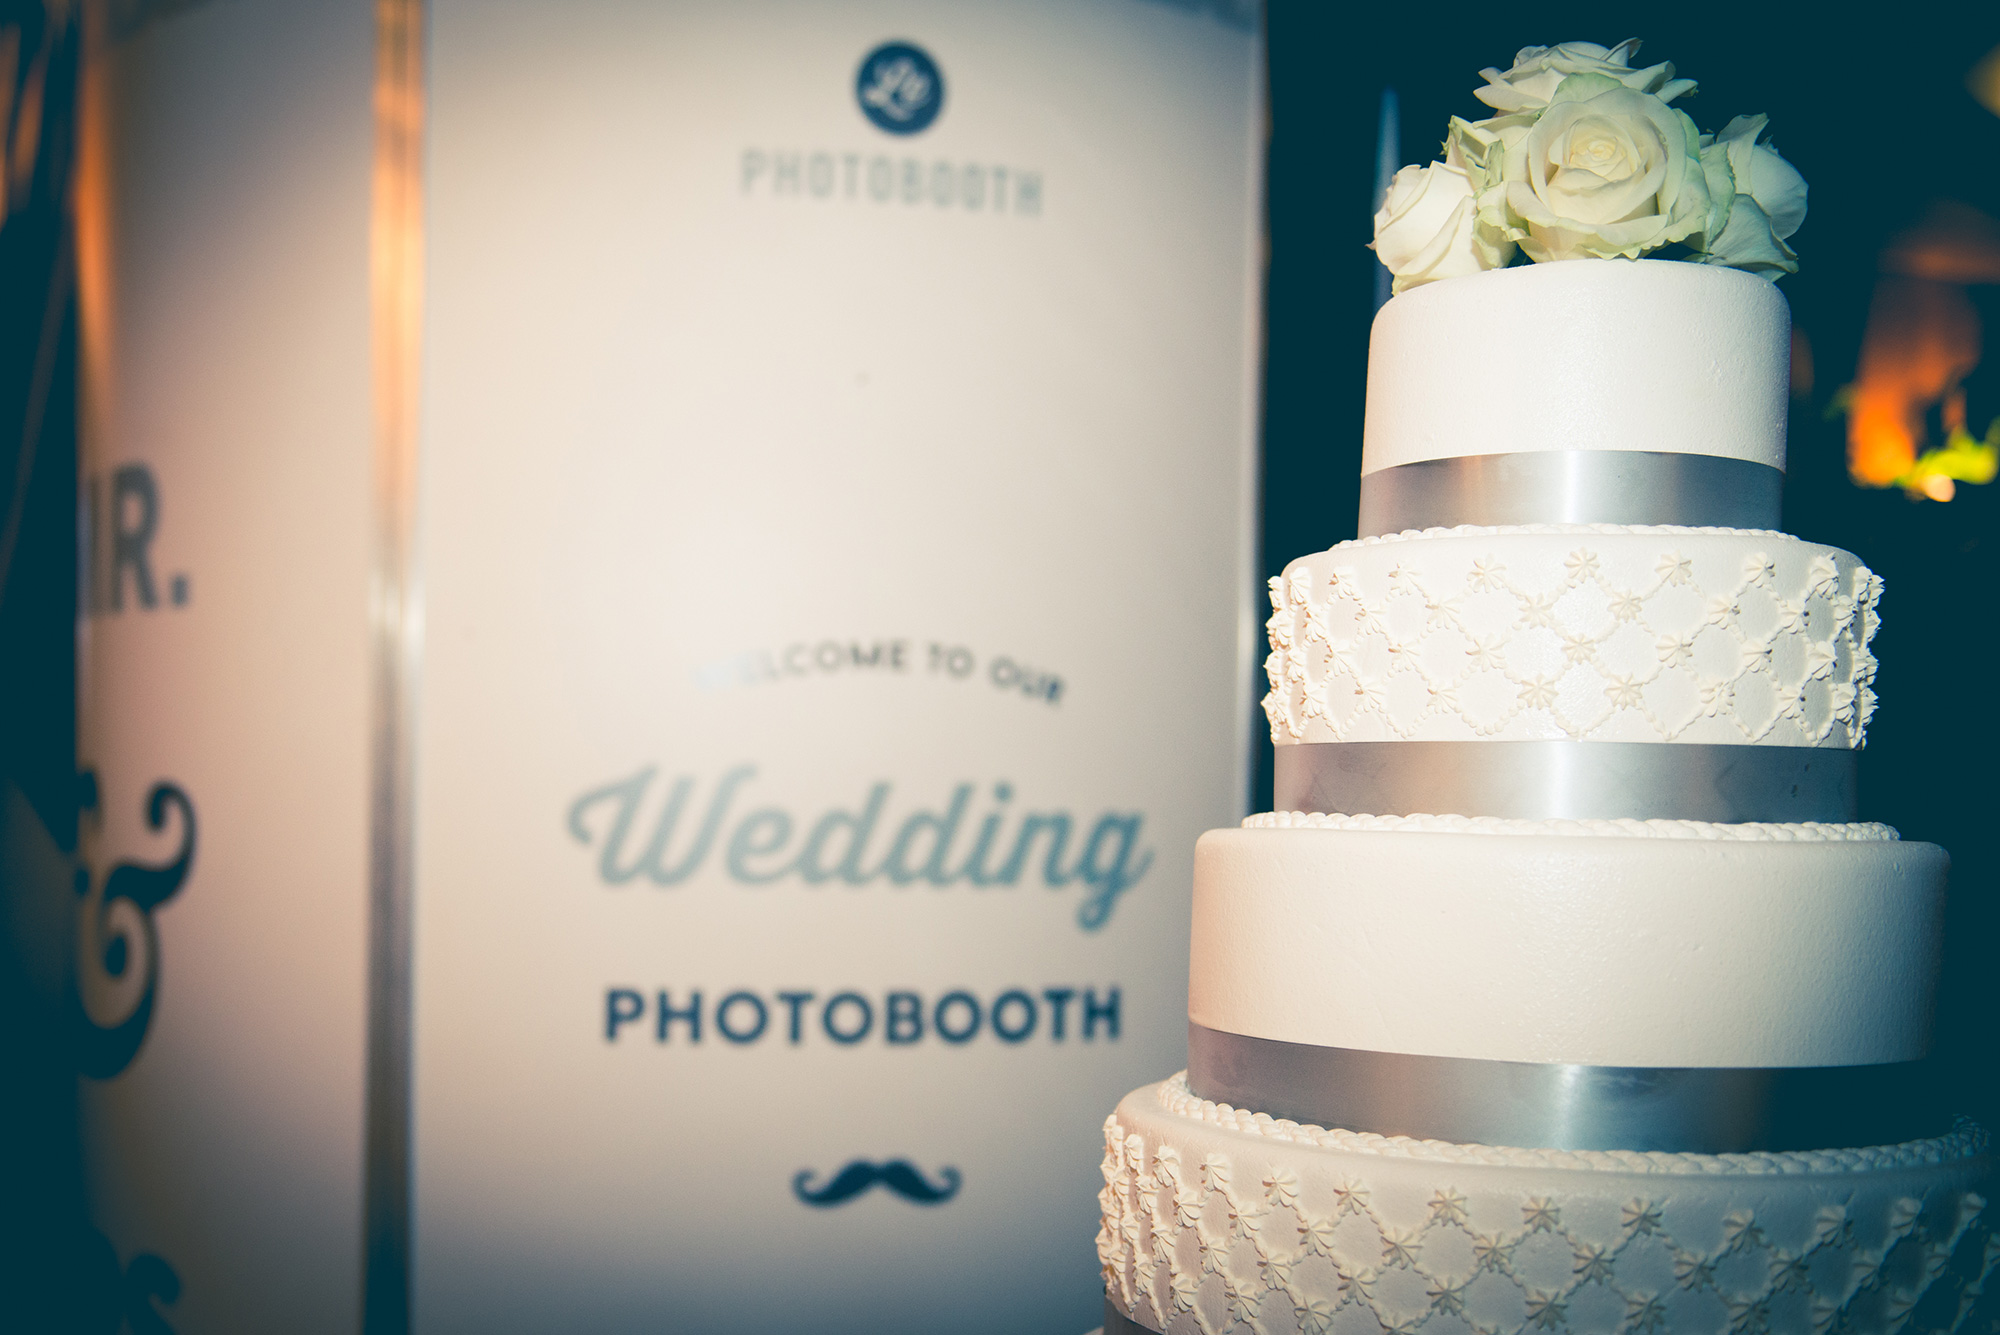 Mariage Photobooth Luxembourg